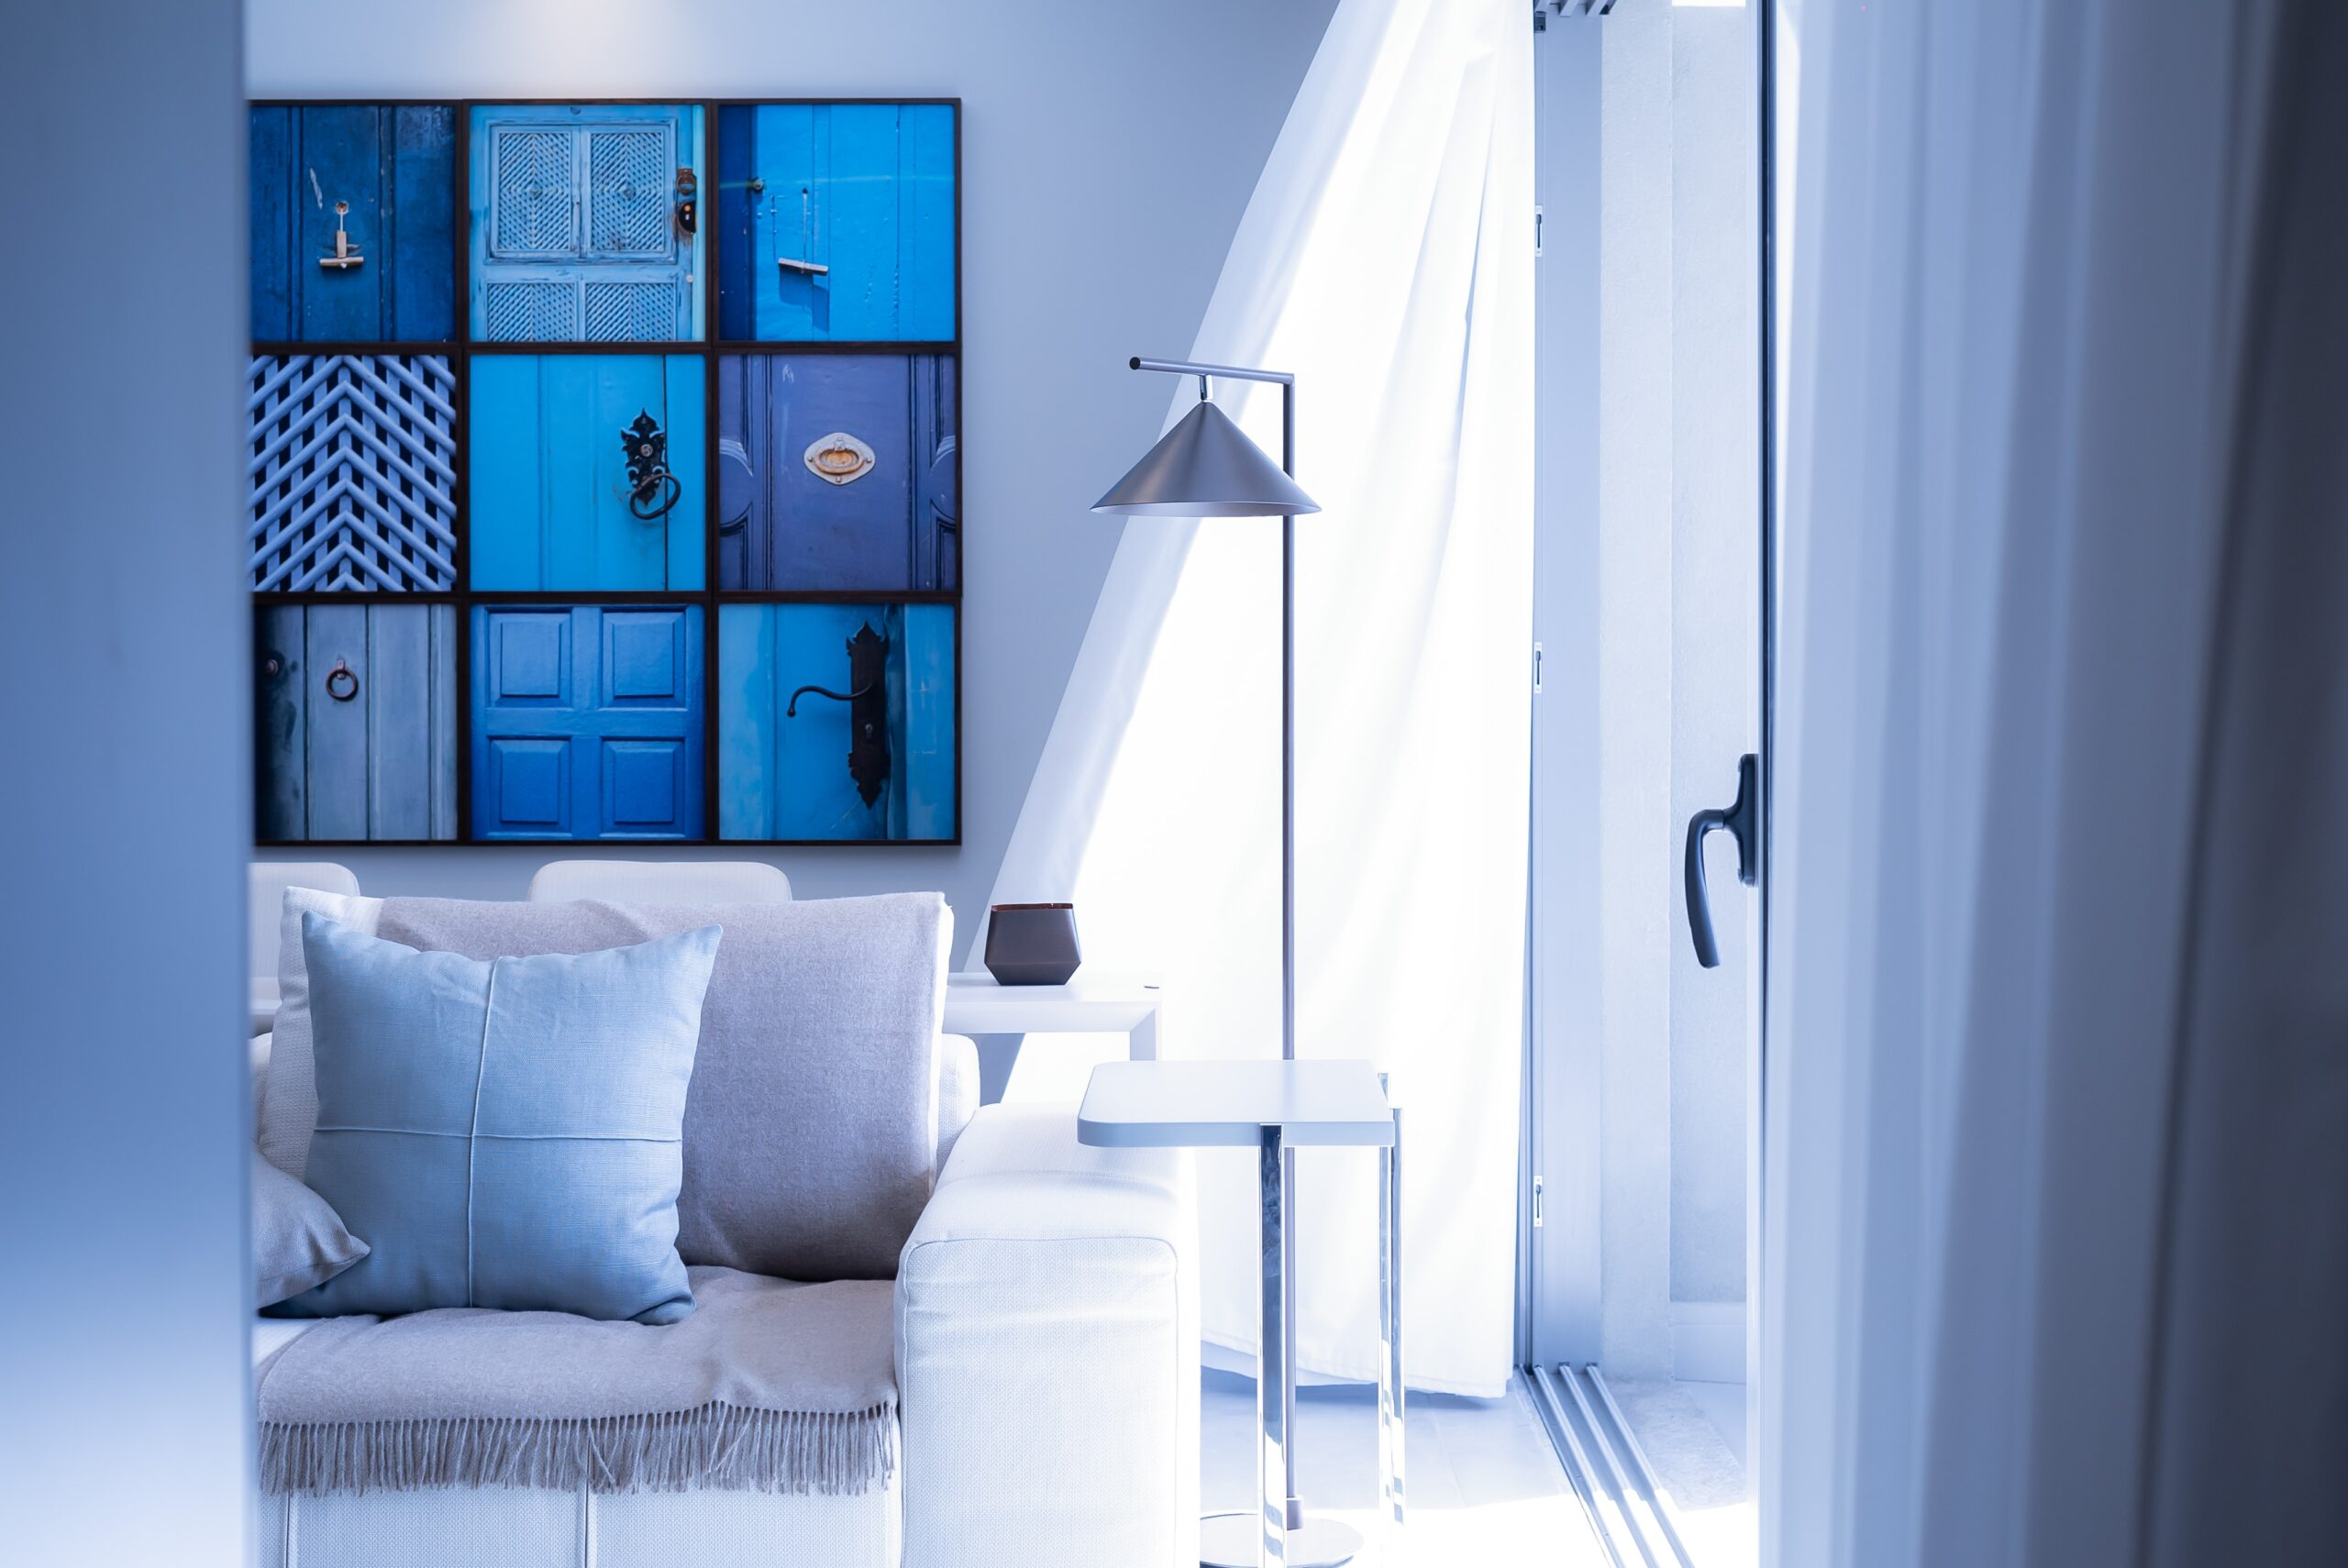 Your Home No Longer Meets Your Needs: Now What?